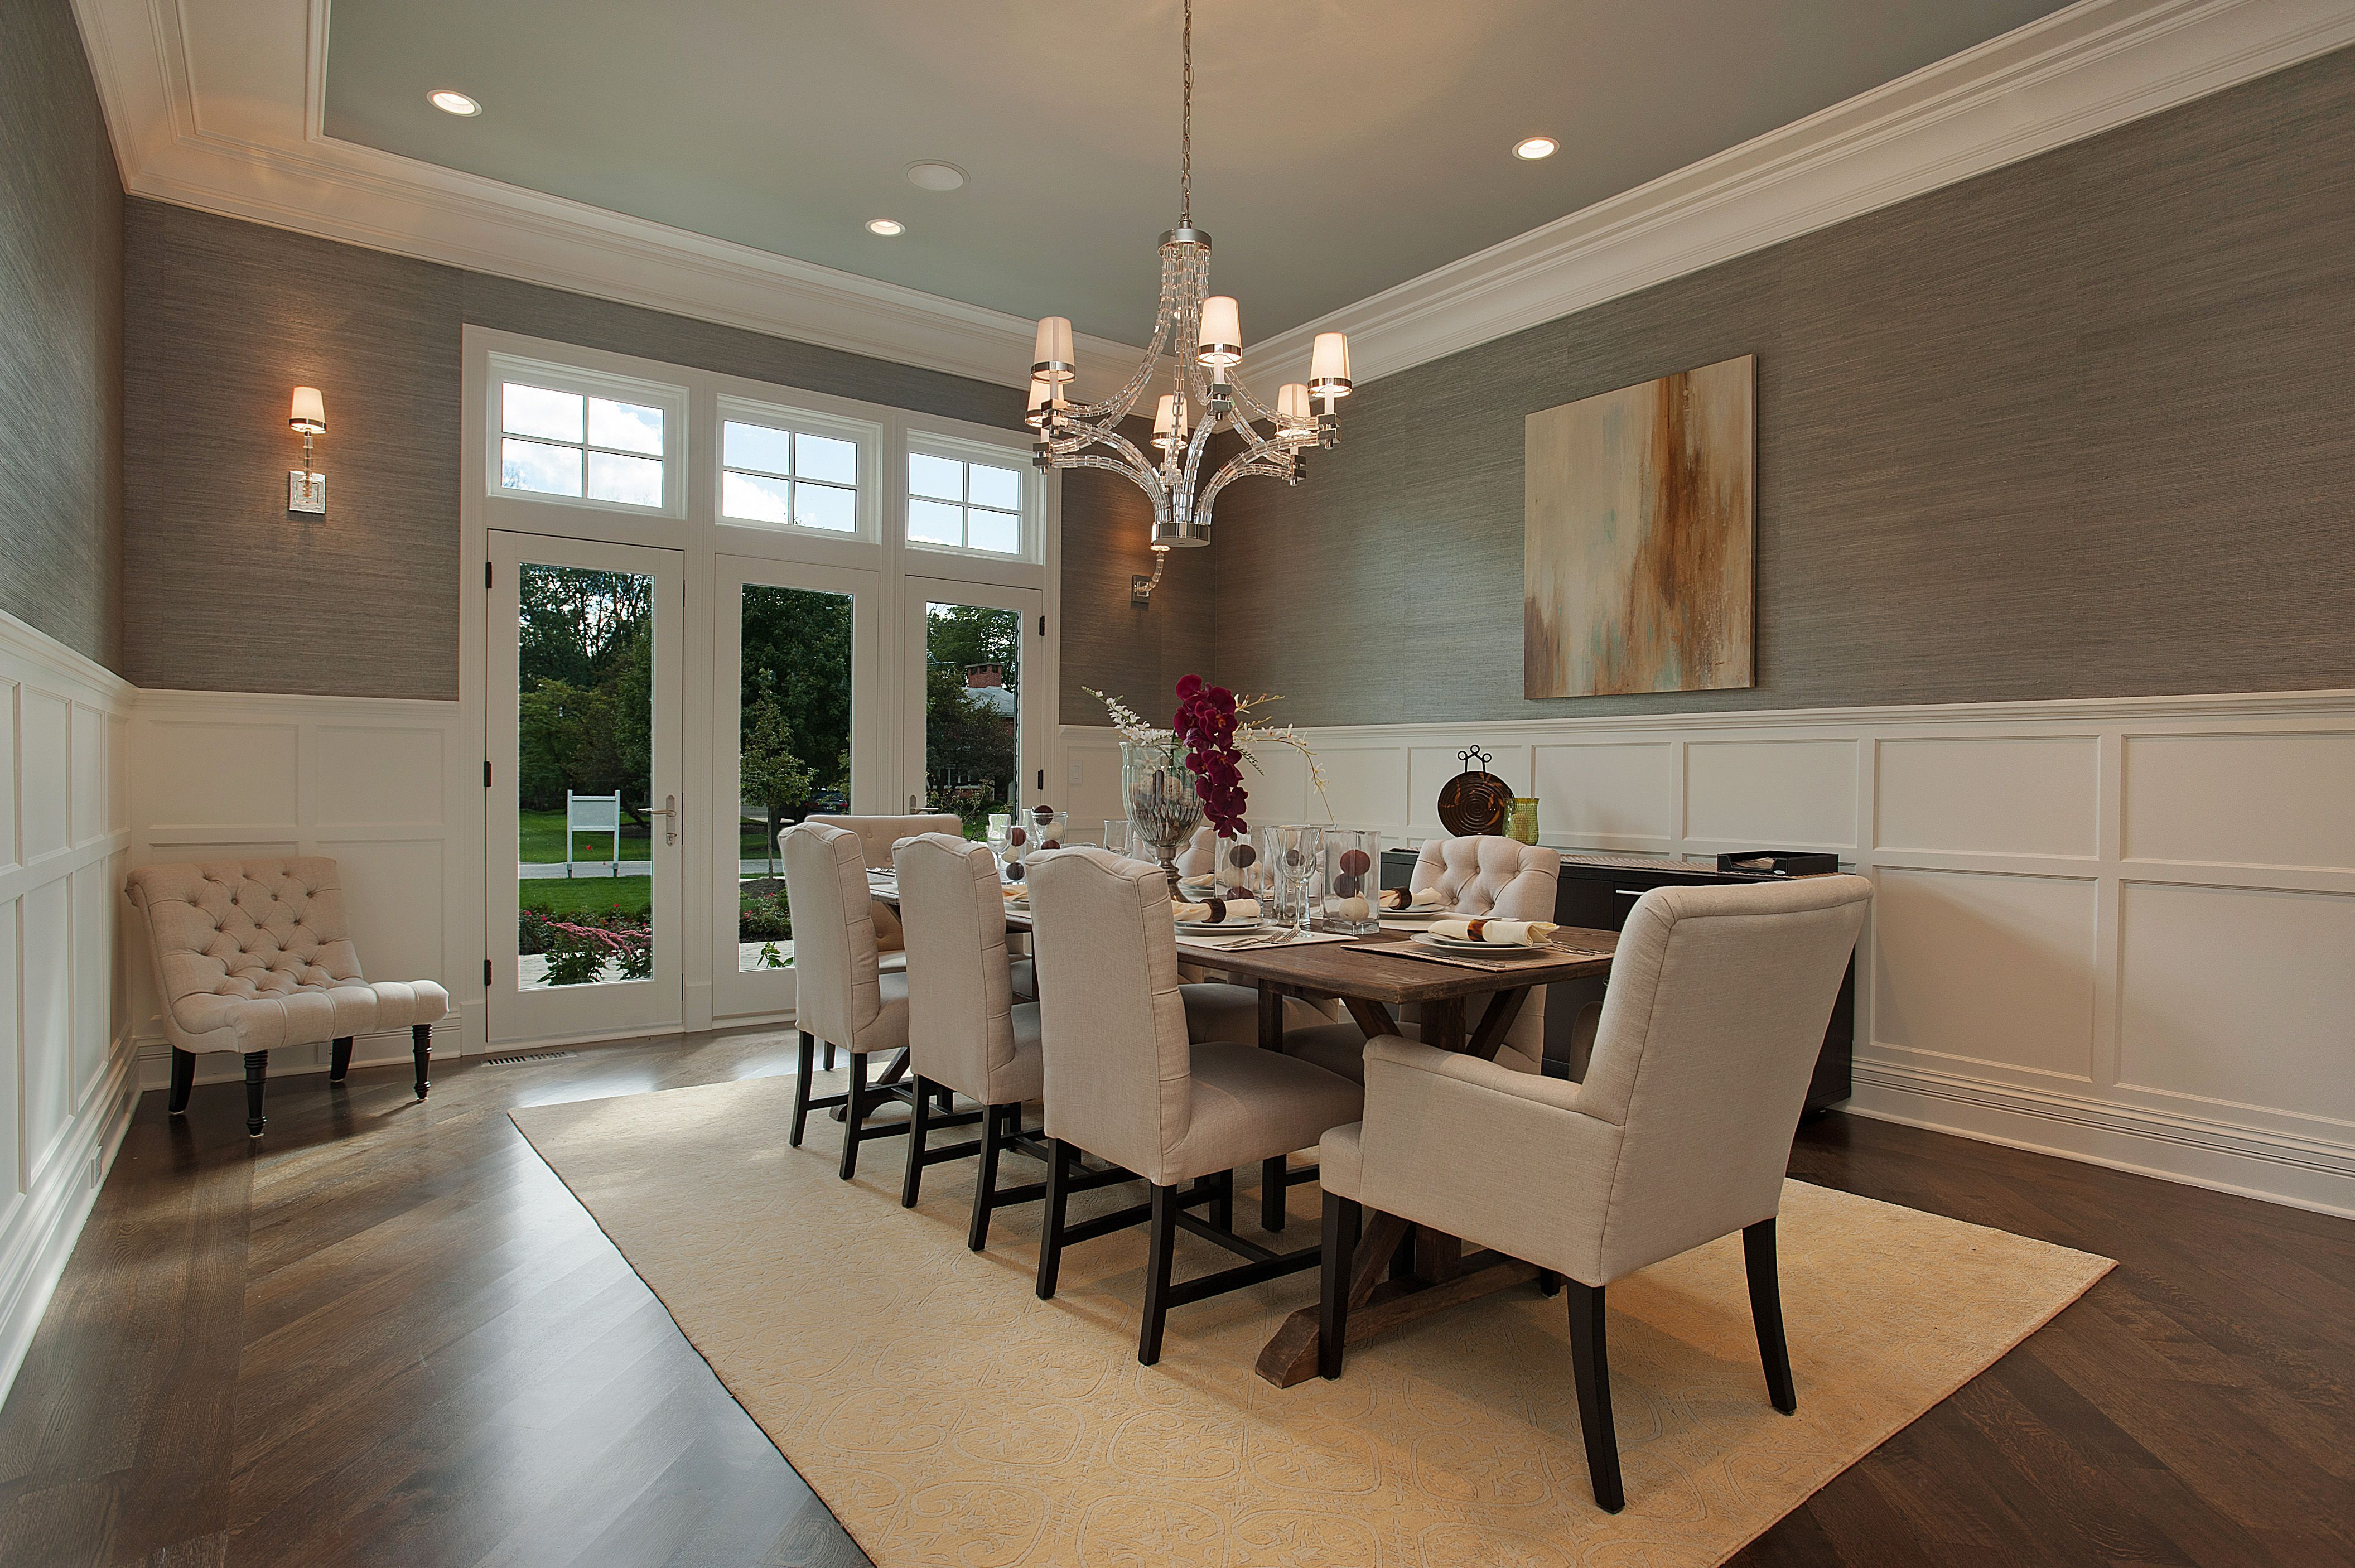 Décor for Formal Dining Room Designs | Dining room wall ...